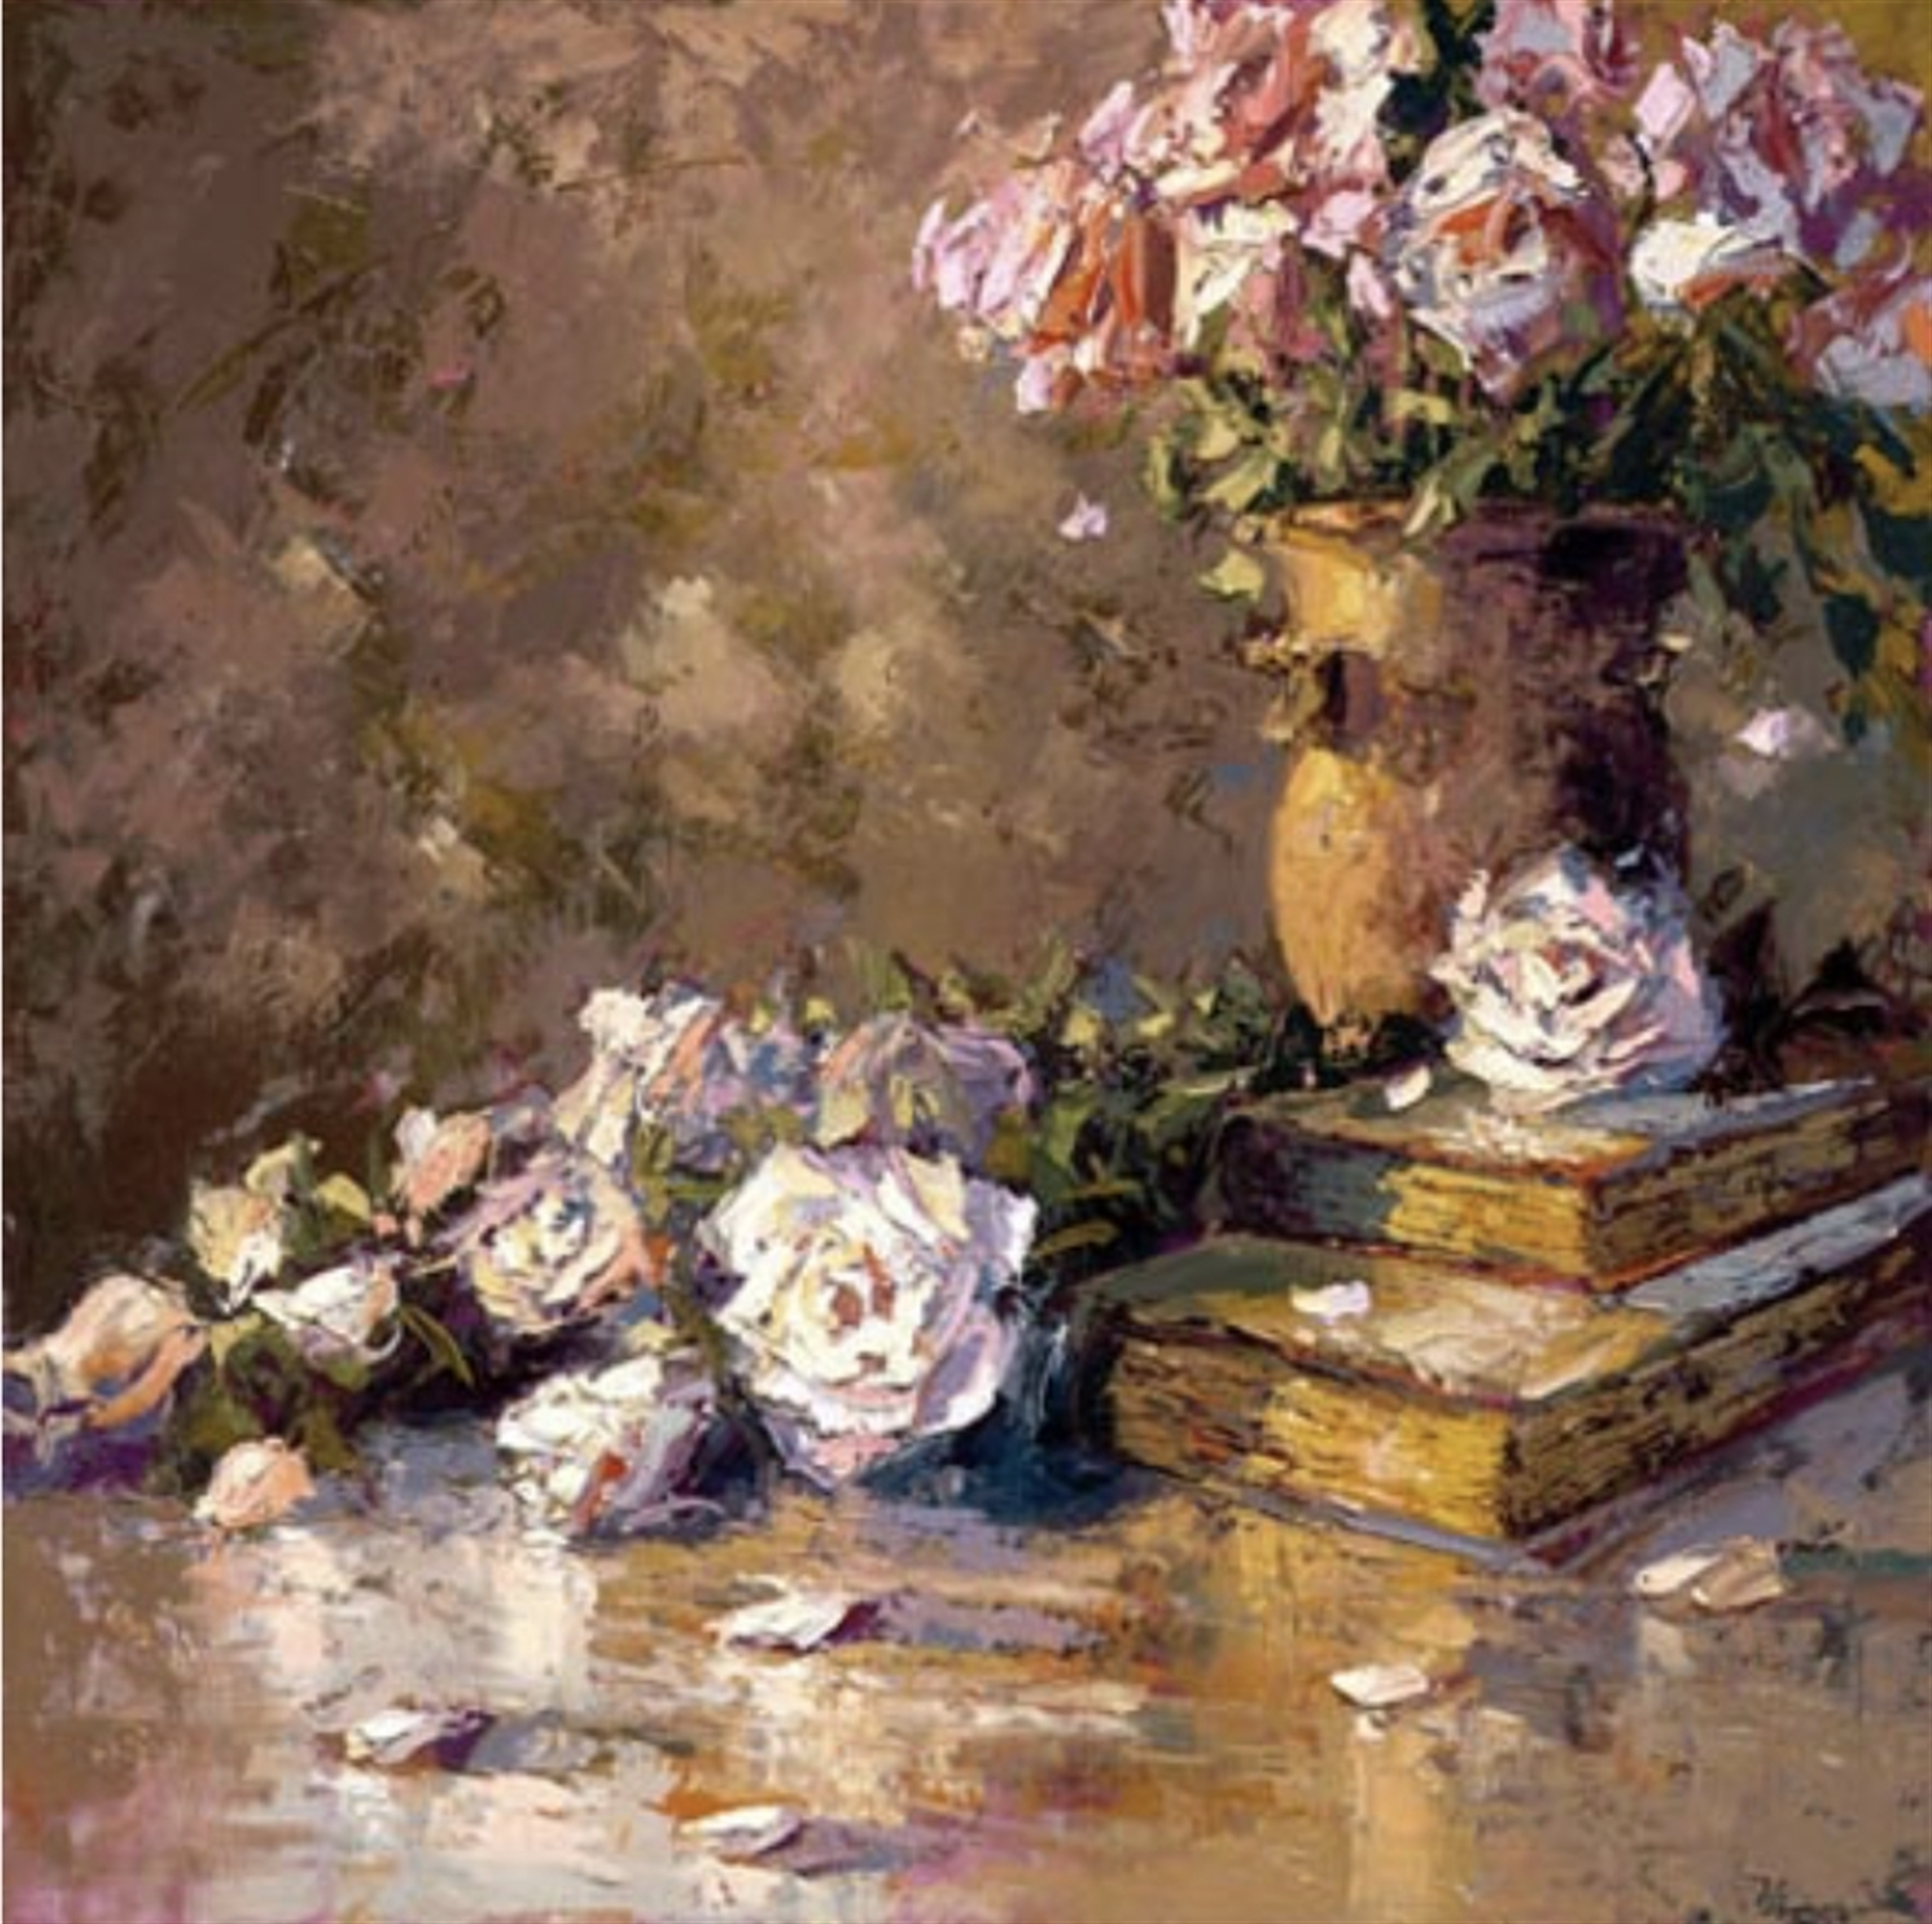 Heavenly Scent by Steven Quartly